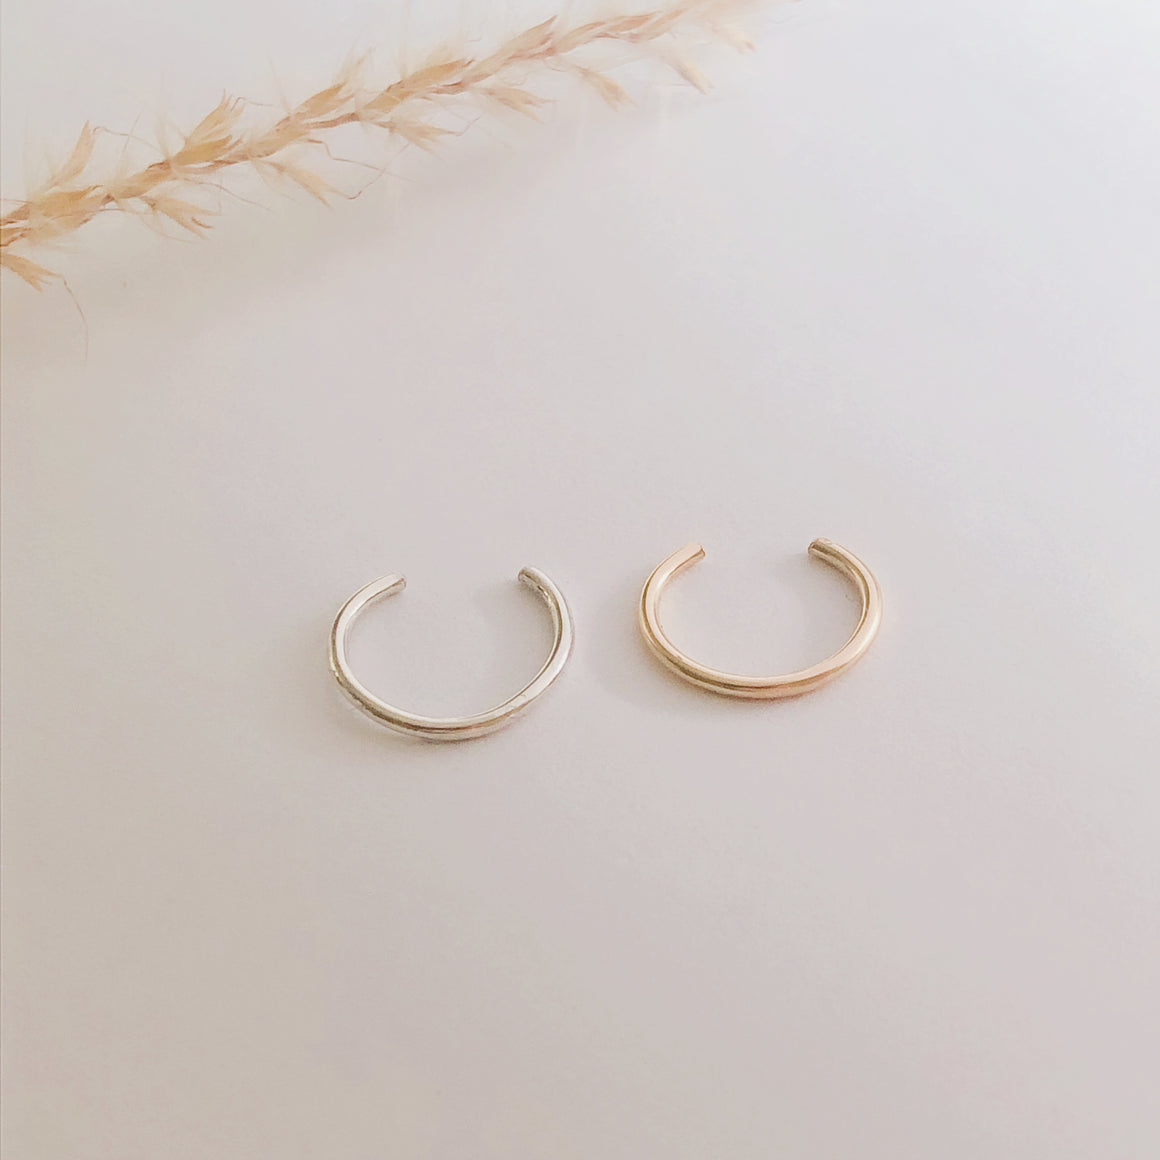 Smooth Ear Cuff | JASMINE VIRANI